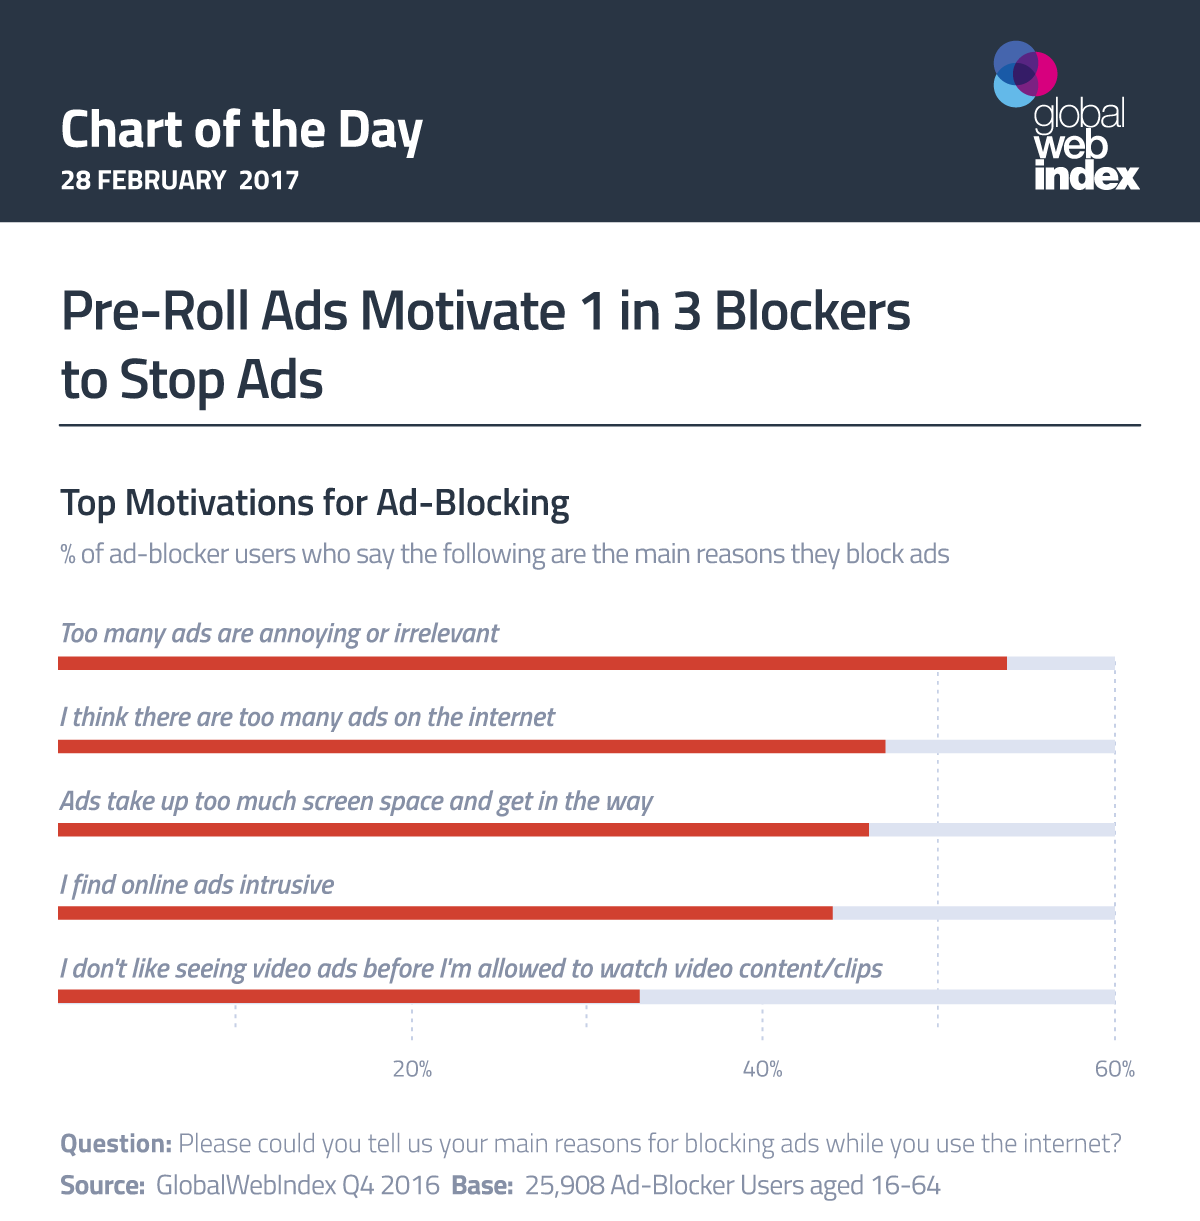 Pre-Roll Ads Motivate 1 in 3 Blockers to Stop Ads